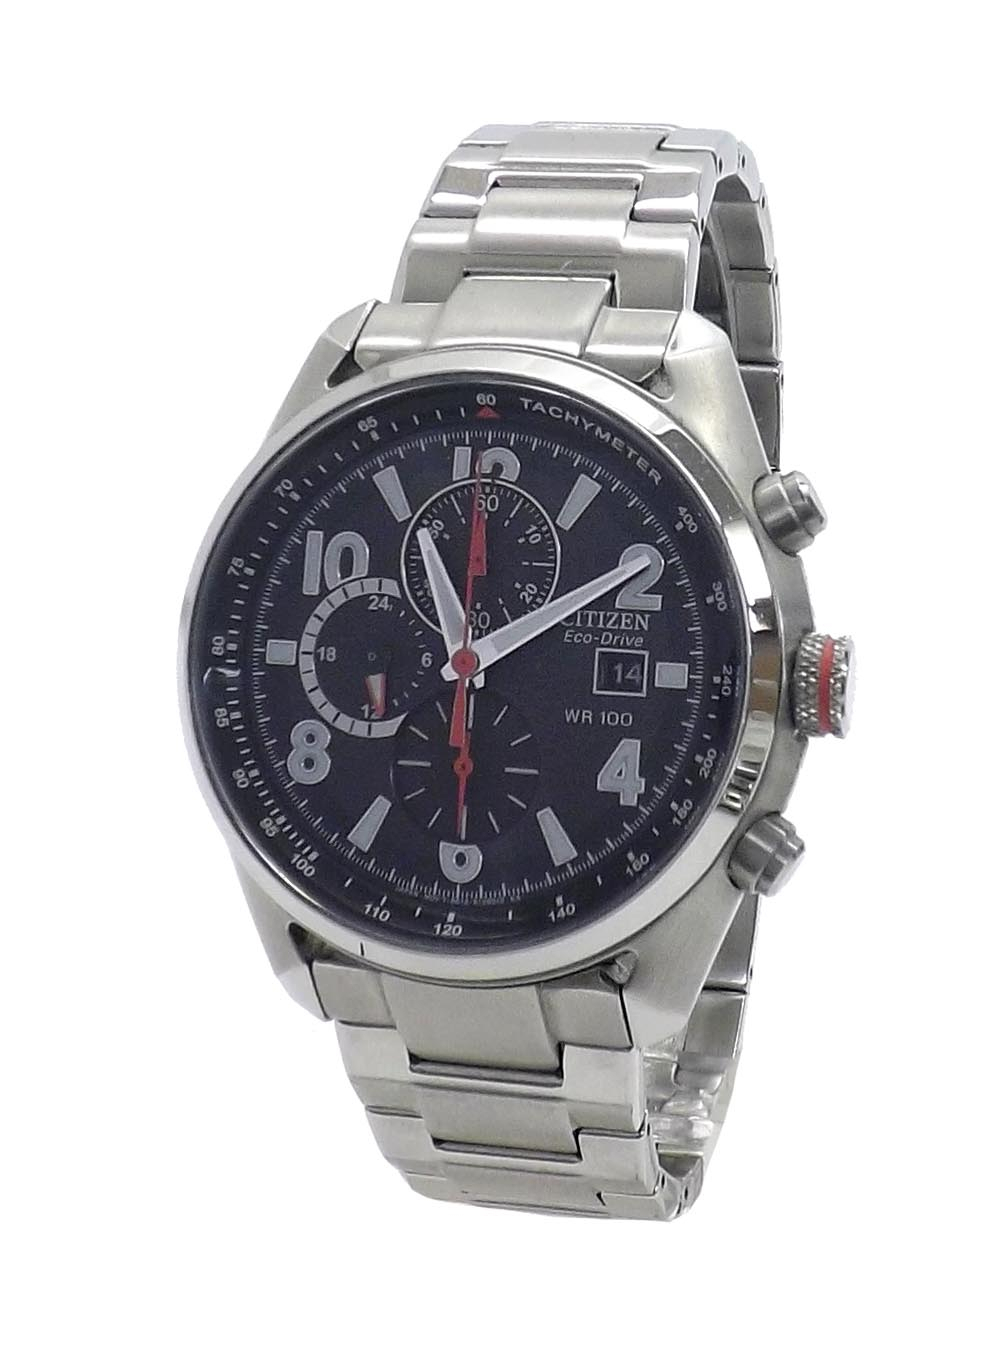 Citizen Eco-Drive Wr 100 Chronograph Stainless Steel in Citizen Eco Drive Chronograph Wr100 Manual